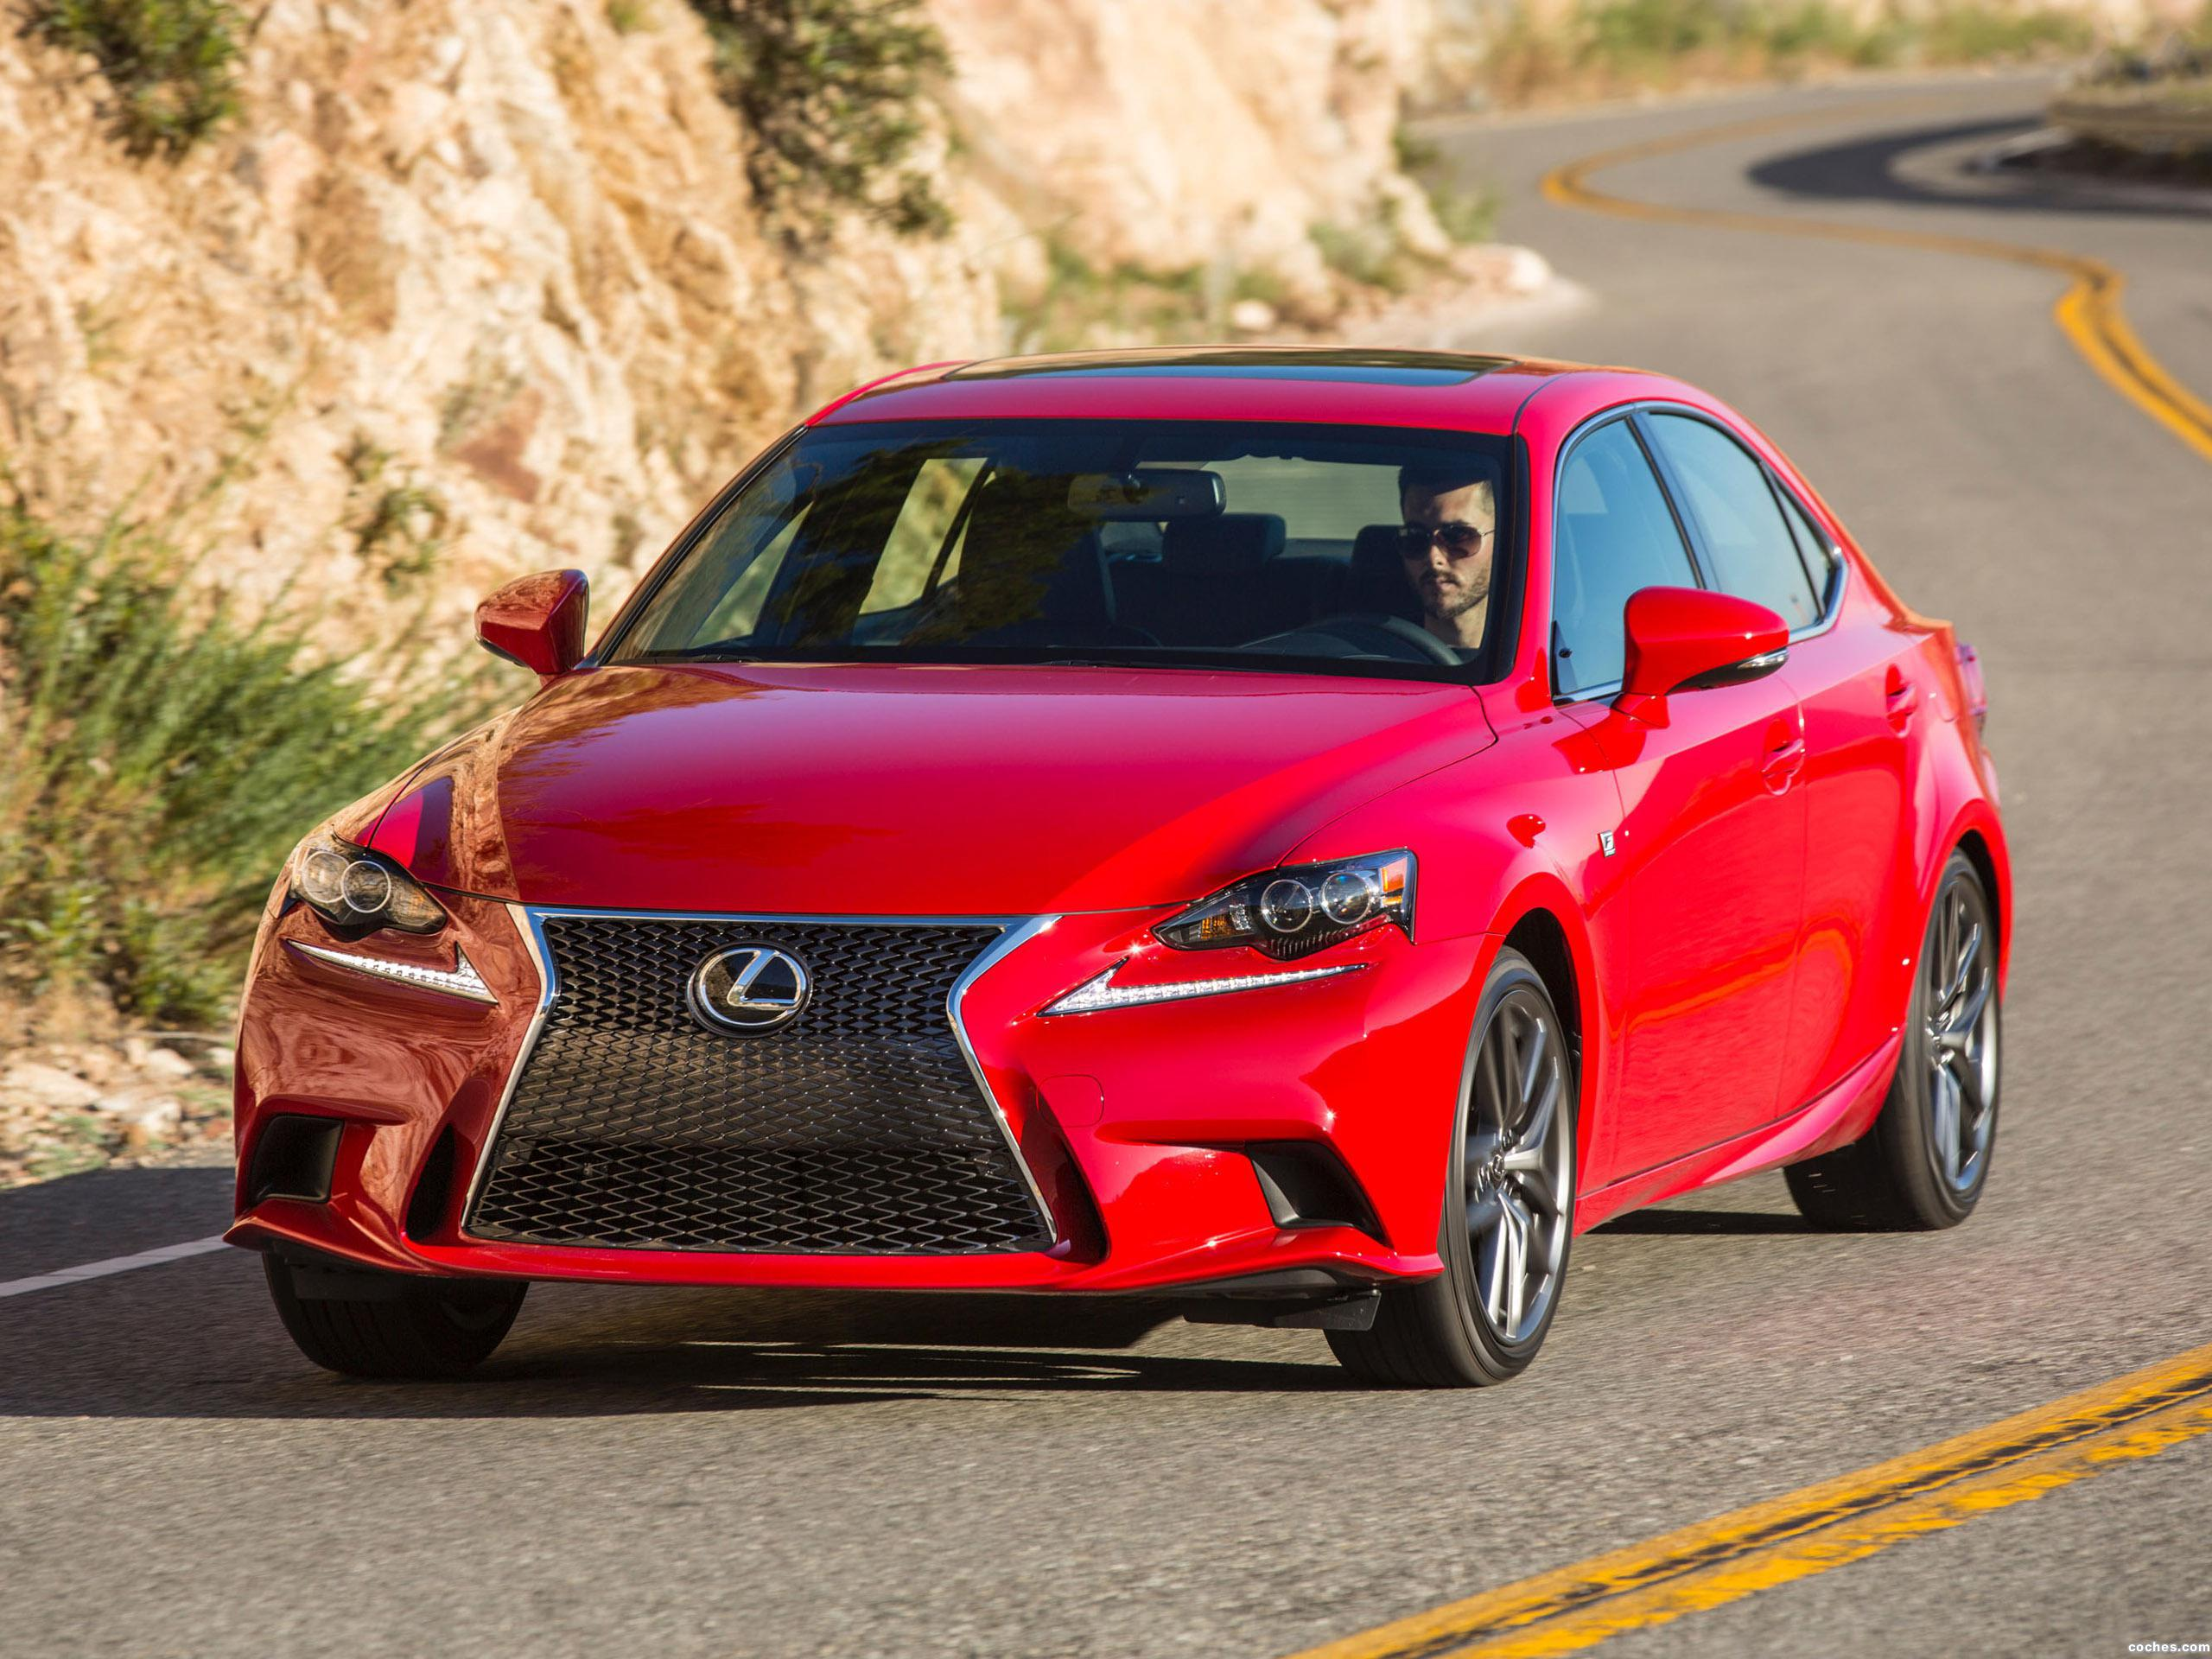 lexus_is-200t-f-sport-2015_r17.jpg